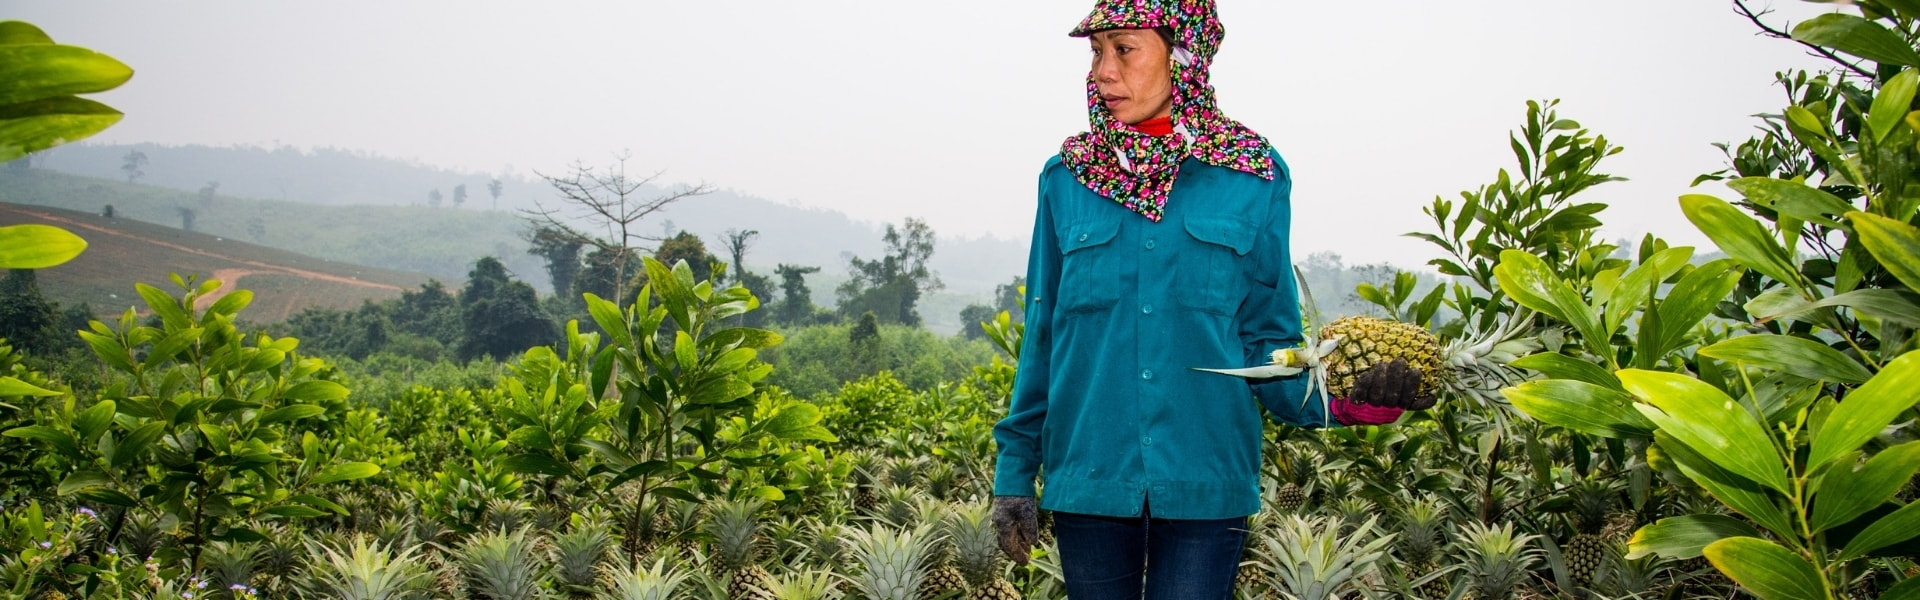 Smallholder pineapple farmer in Vietnam